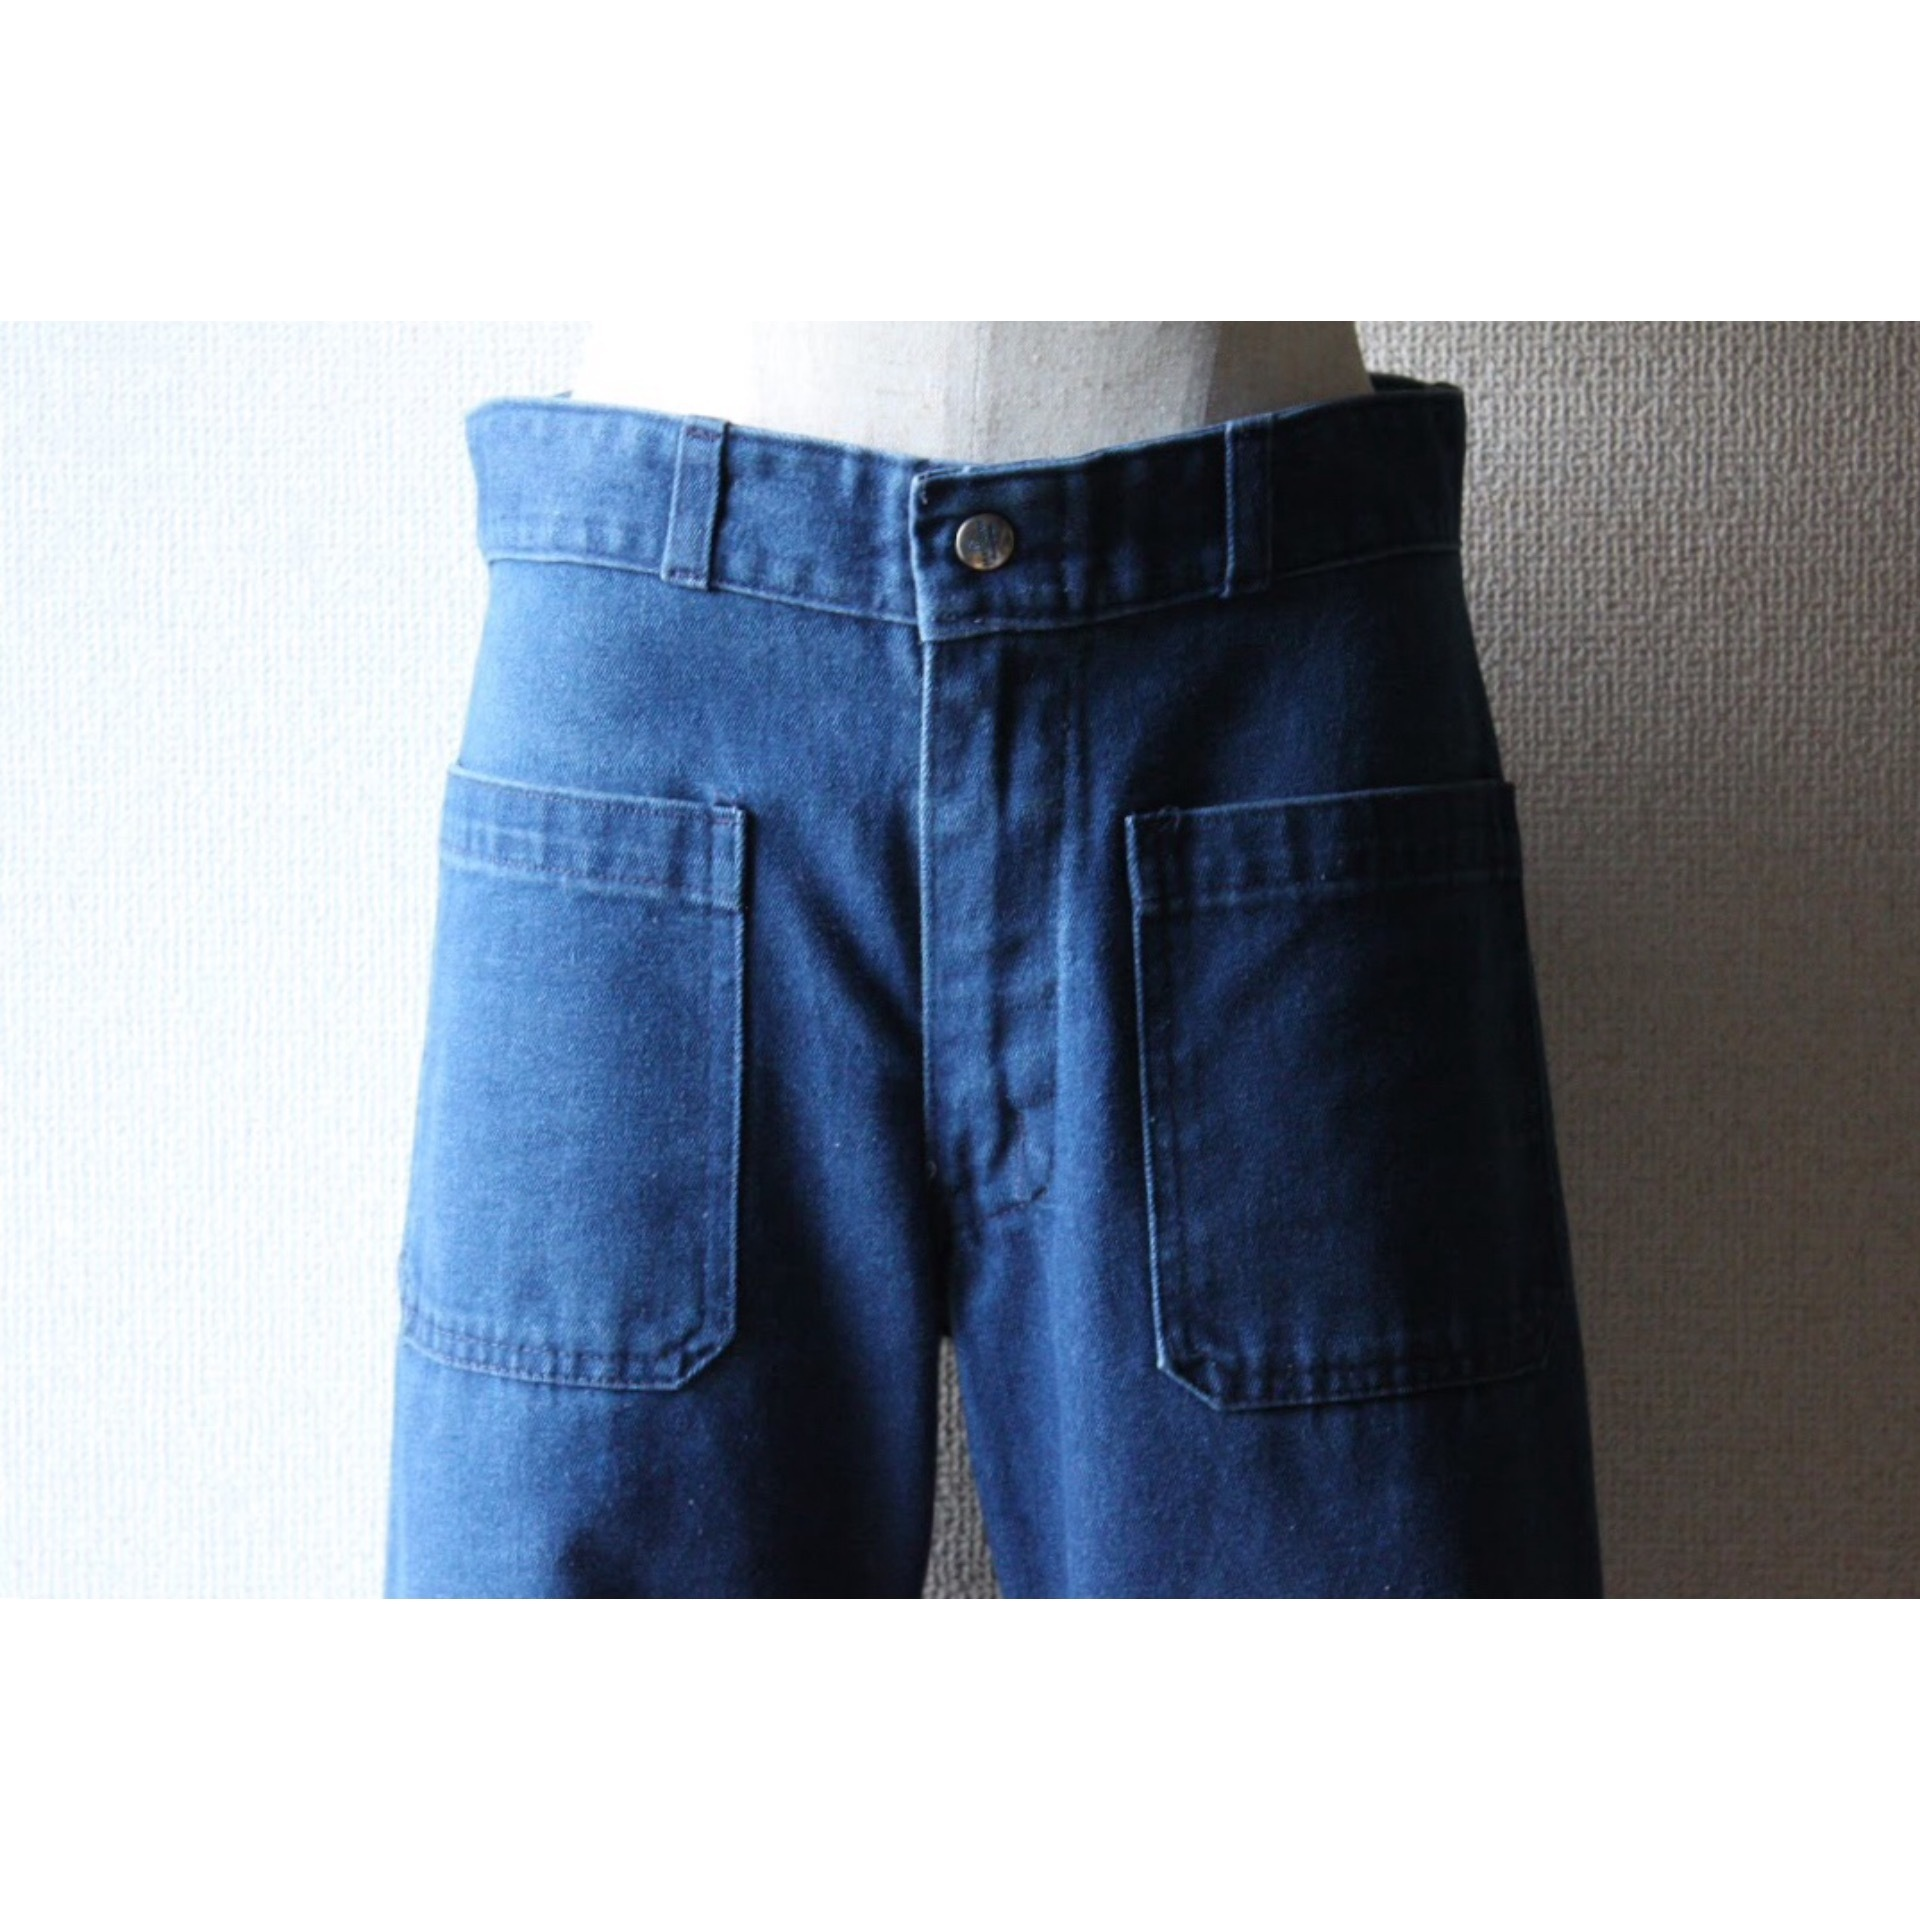 Vintage U.S.Navy type trousers